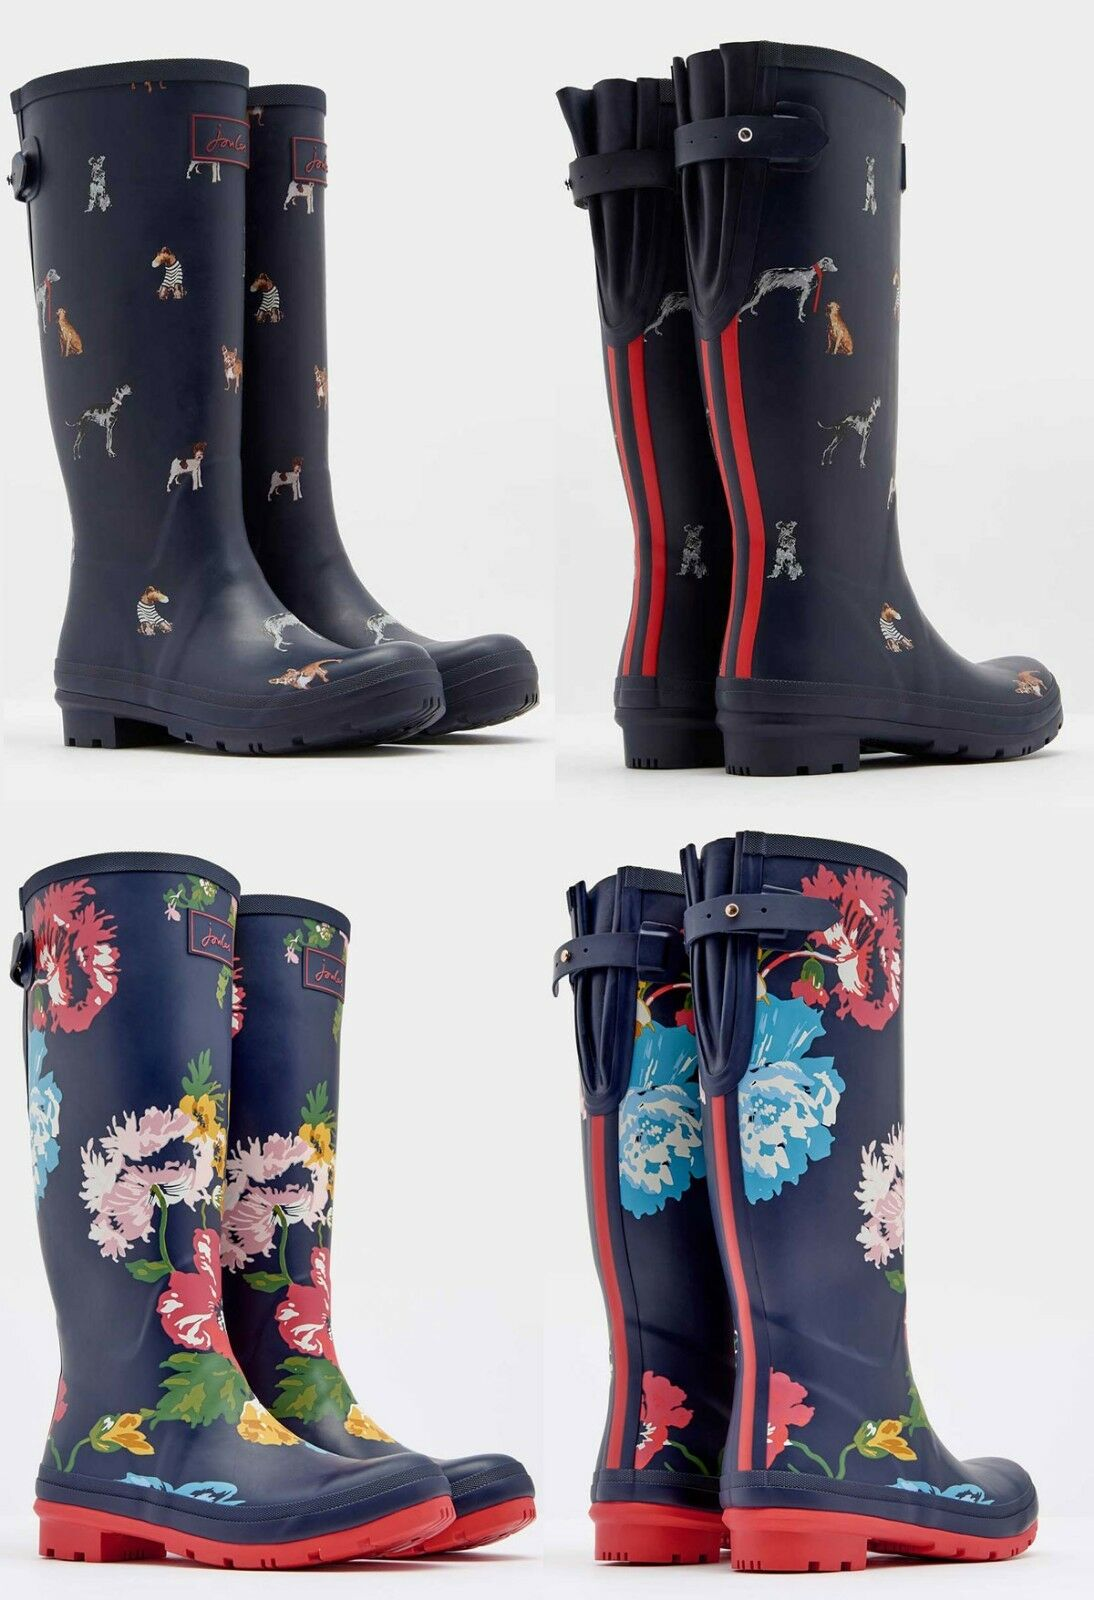 Joules Ajusta Back Gusset Welly - French Navy Posy, French Navy Chic Dog